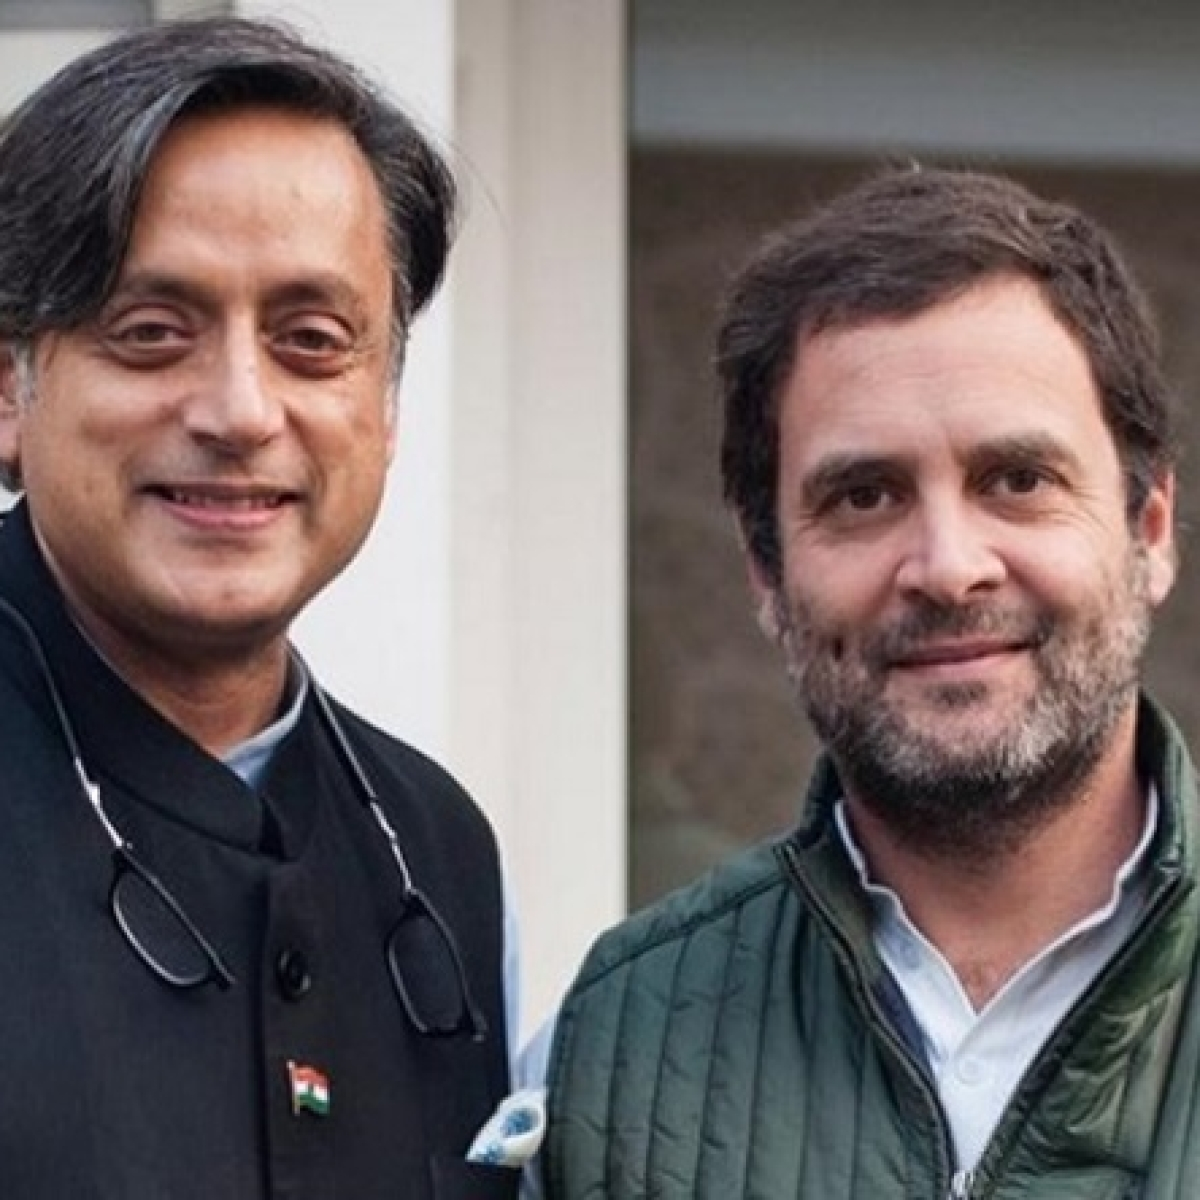 Rahul Gandhi turns 50: Shashi Tharoor extends wishes and calls him a 'man with considerable intellectual and curiosity'